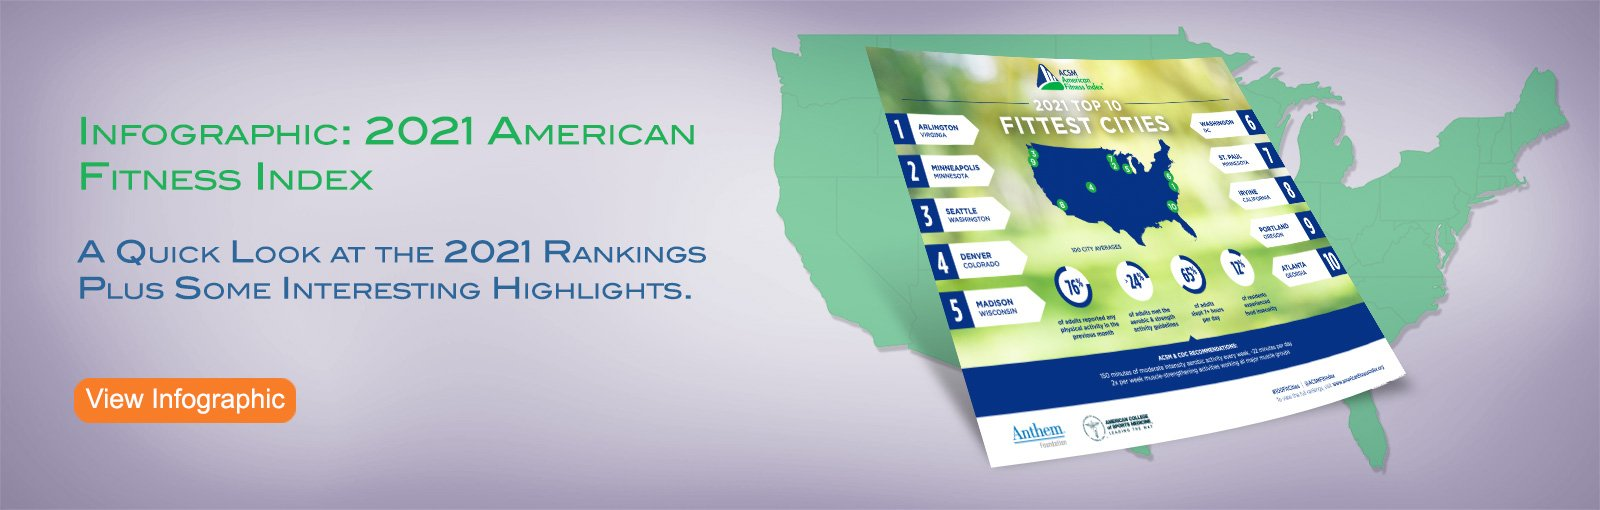 infographic-2021-american-fitness-index-a-quick-look-at-the-2021-rankings-plus-some-interesting-highlights